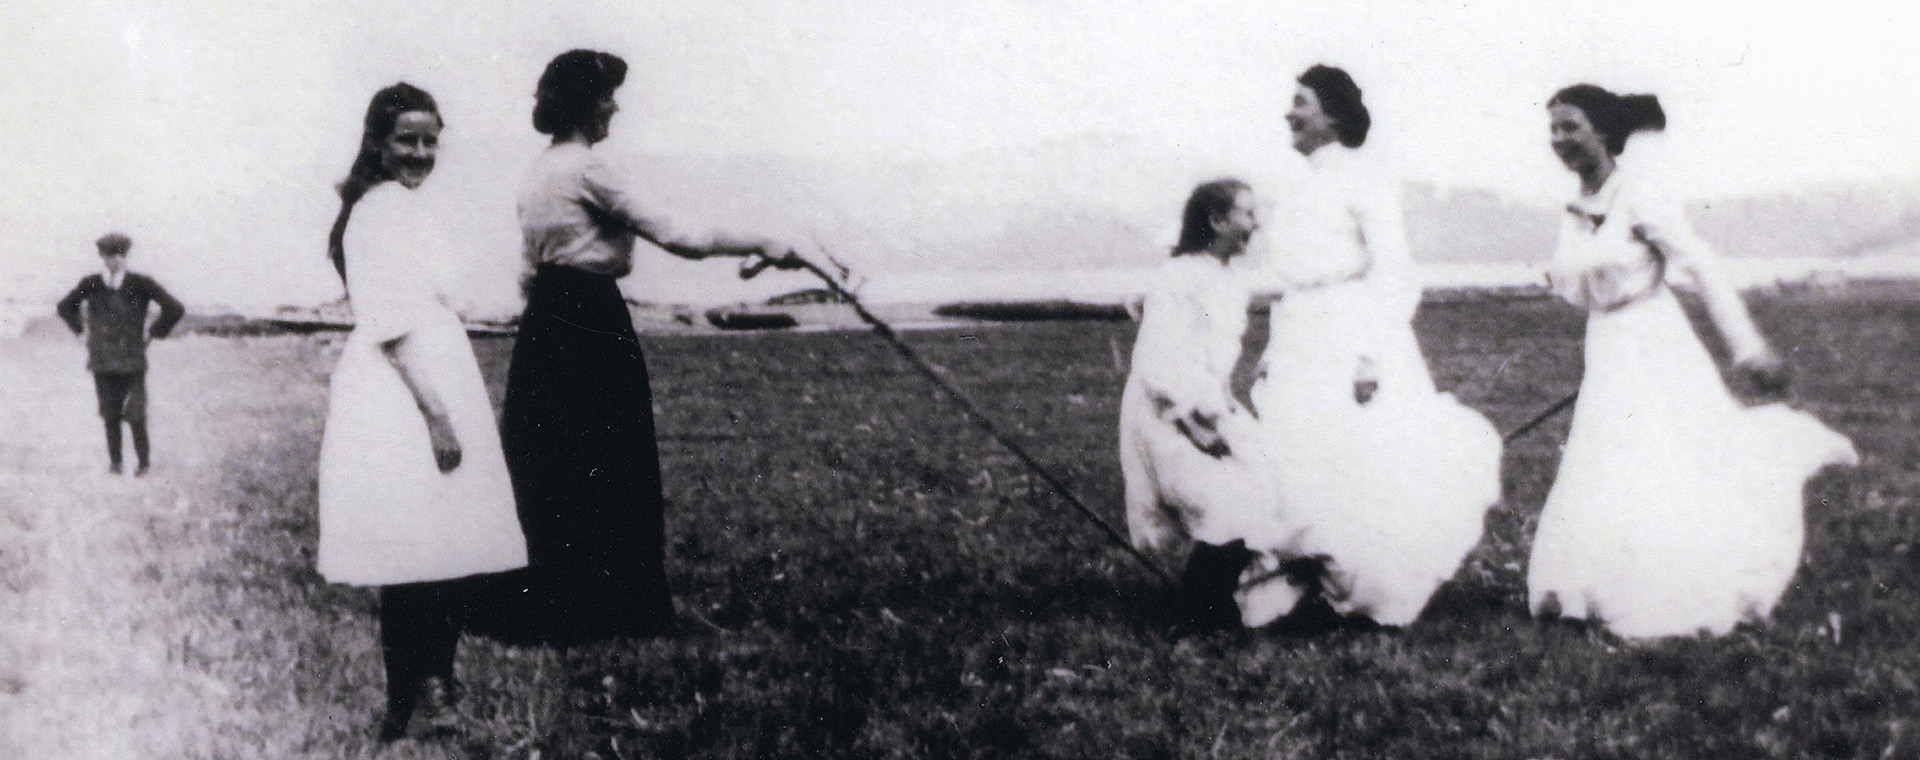 A black and white photograph of women skipping with a jump rope in a field.